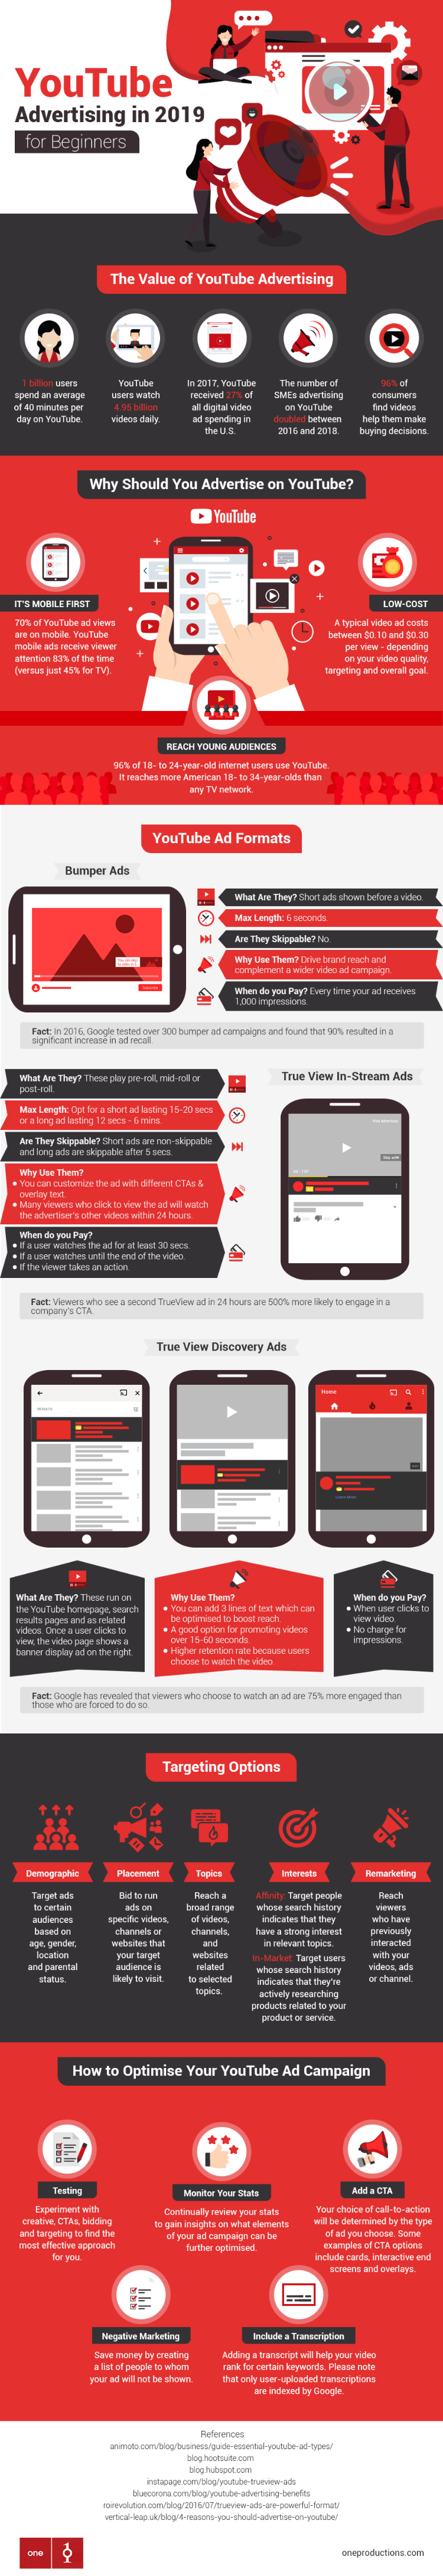 YouTube Advertising For Beginners-Infographic